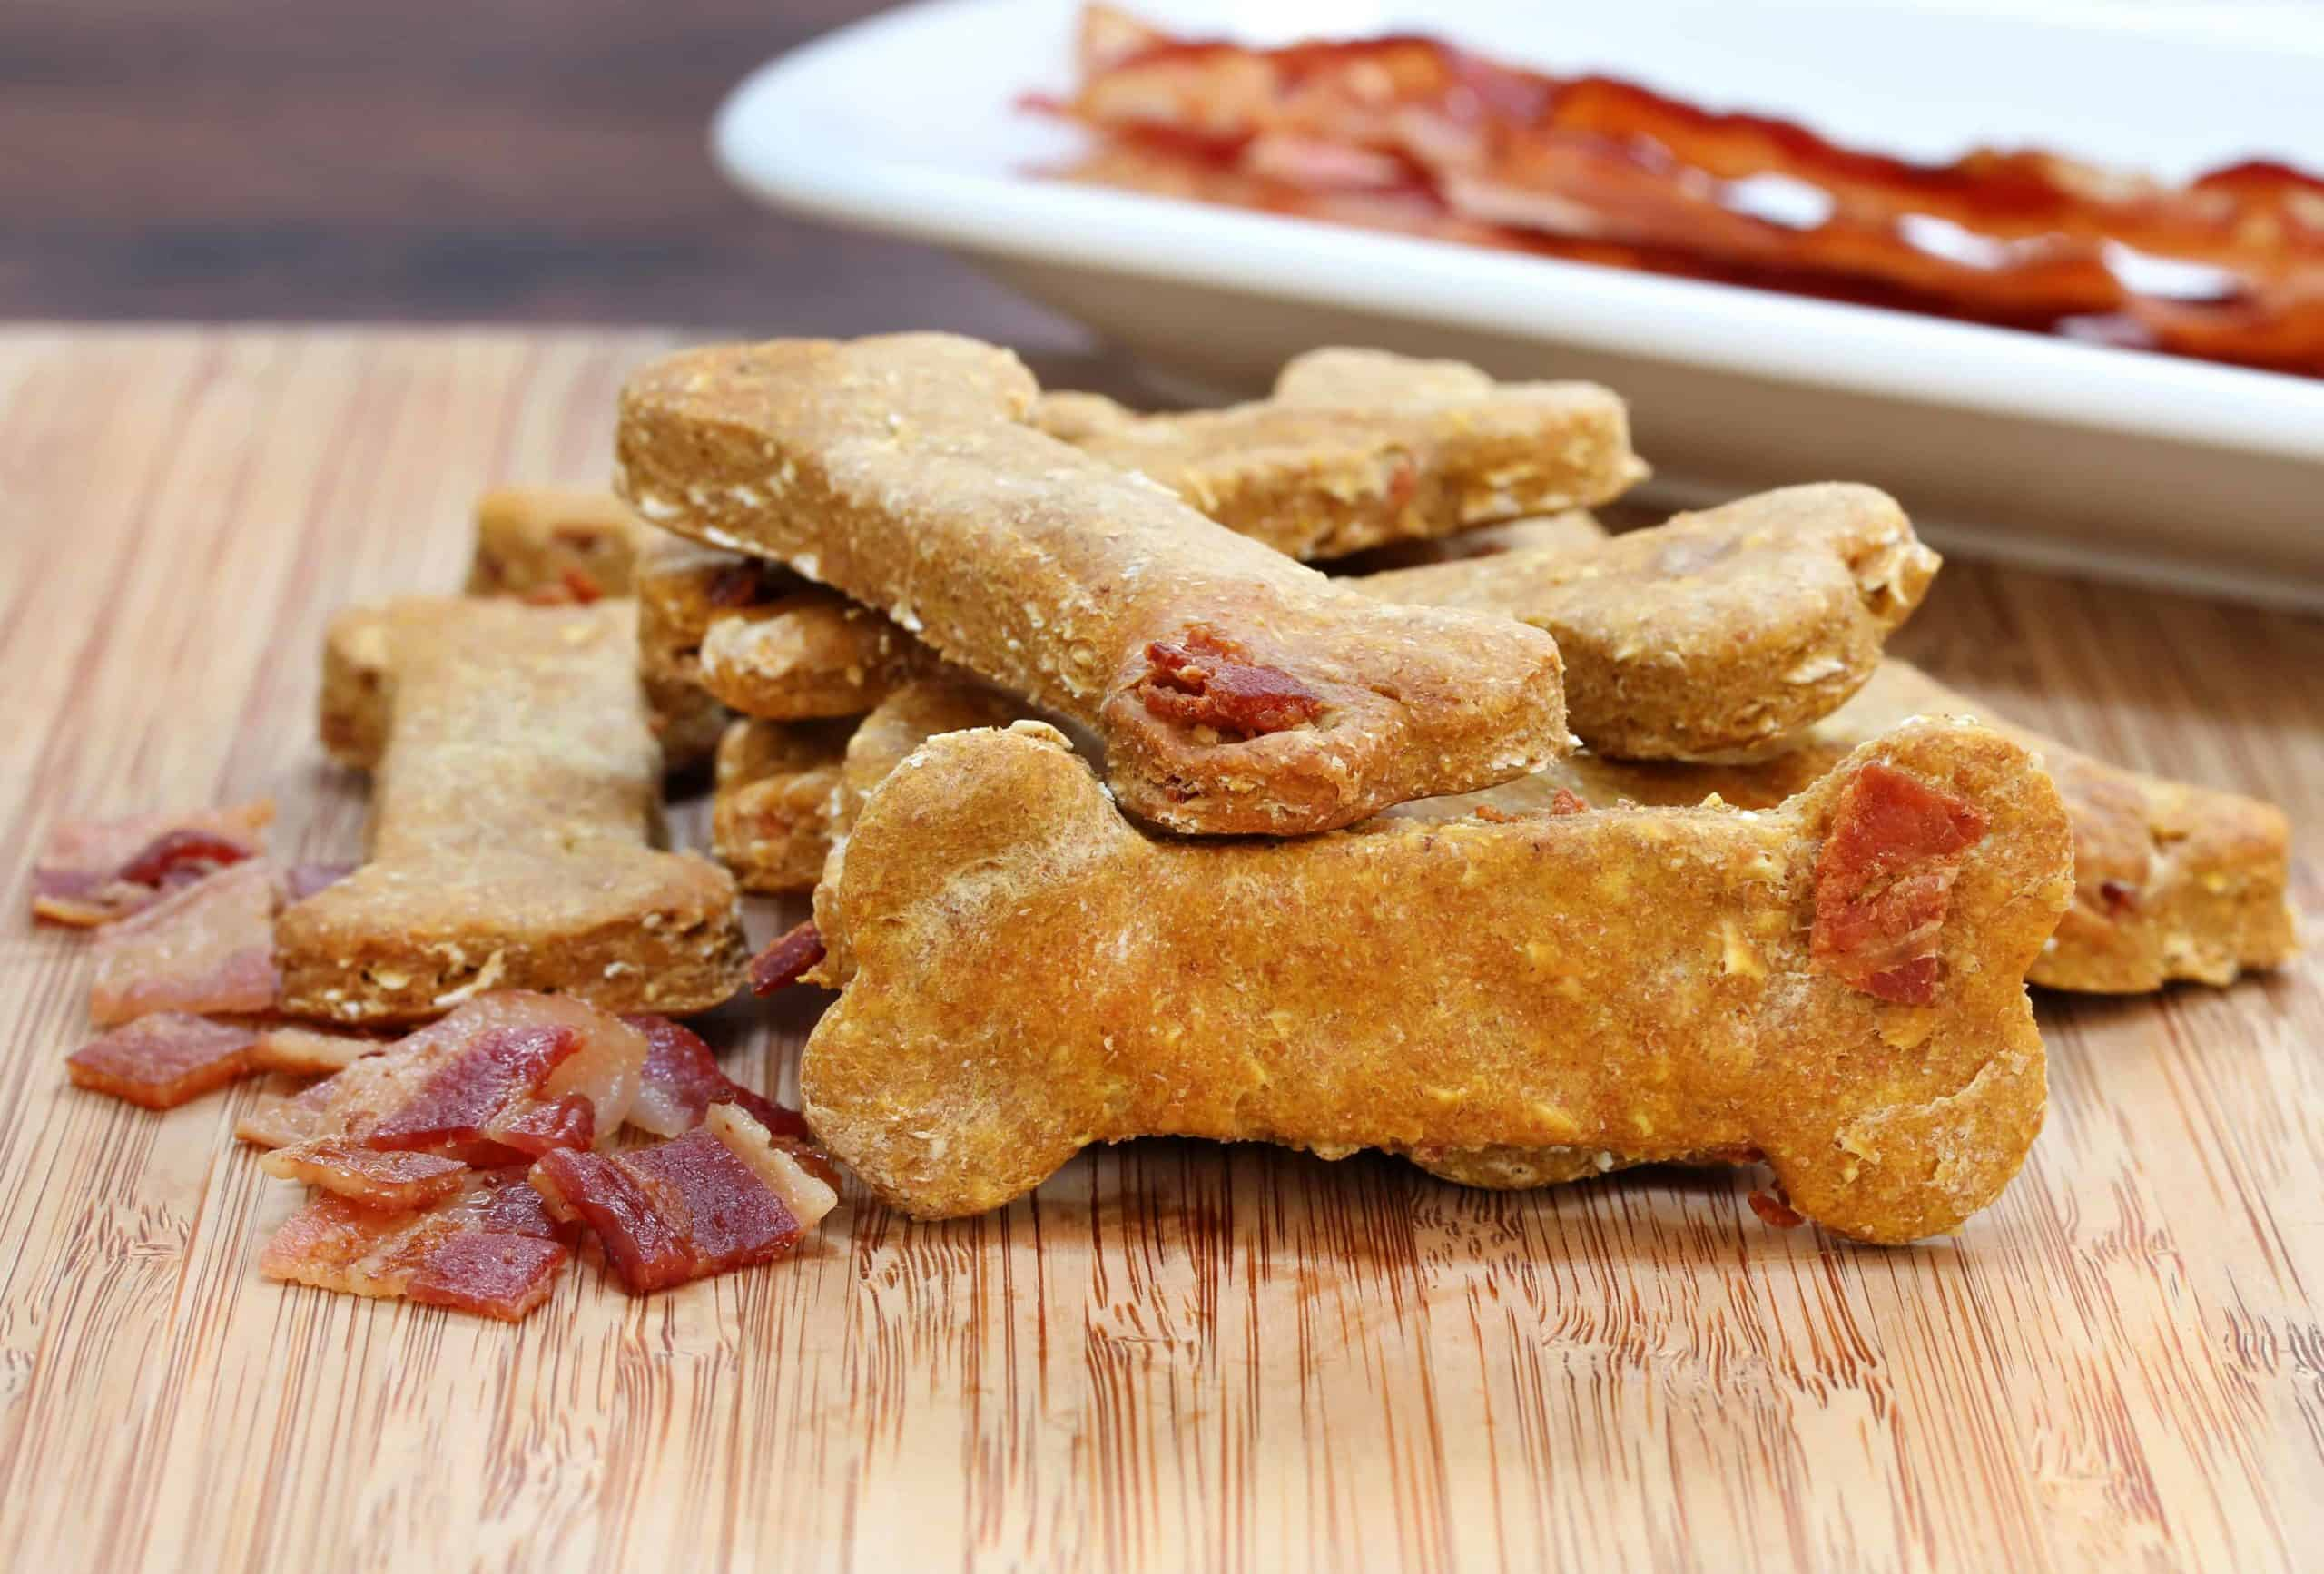 Homemade dog treats with bacon. Add other flavors such as bacon bits, liver powder, or shredded cheese to make DIY dog treats tastier.